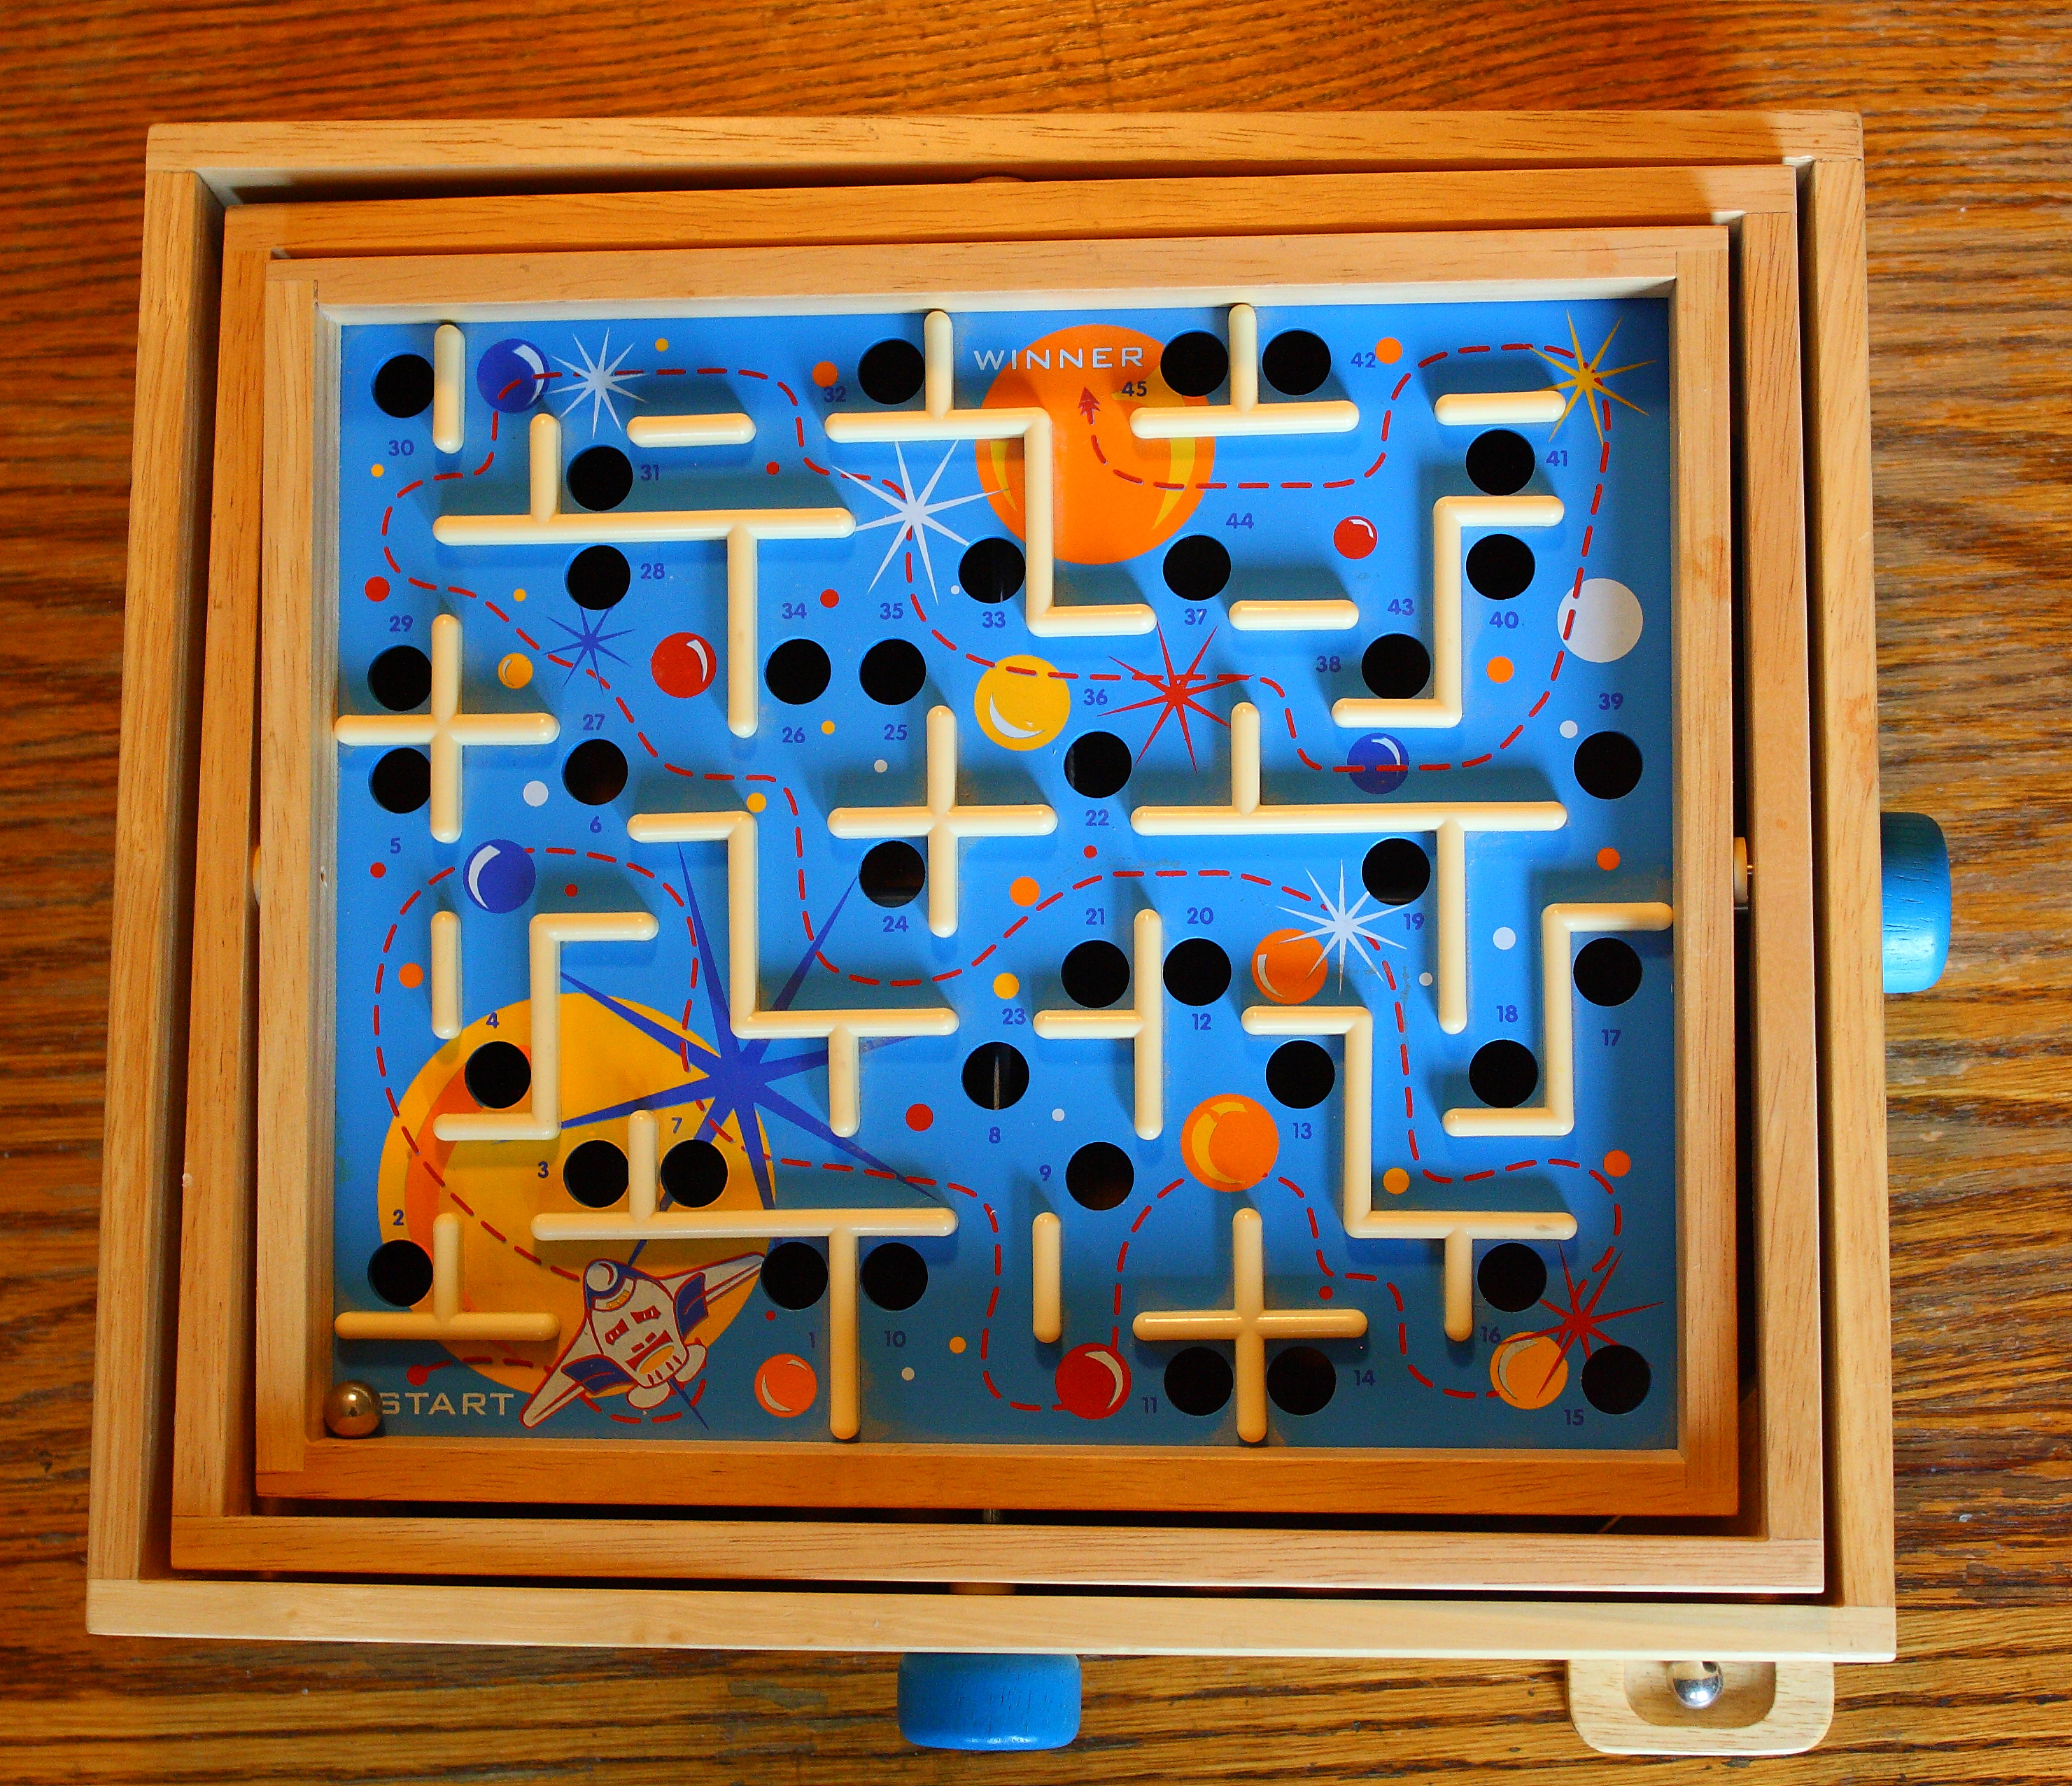 10 of the Best Marble Maze Toys for Creativity and Logic